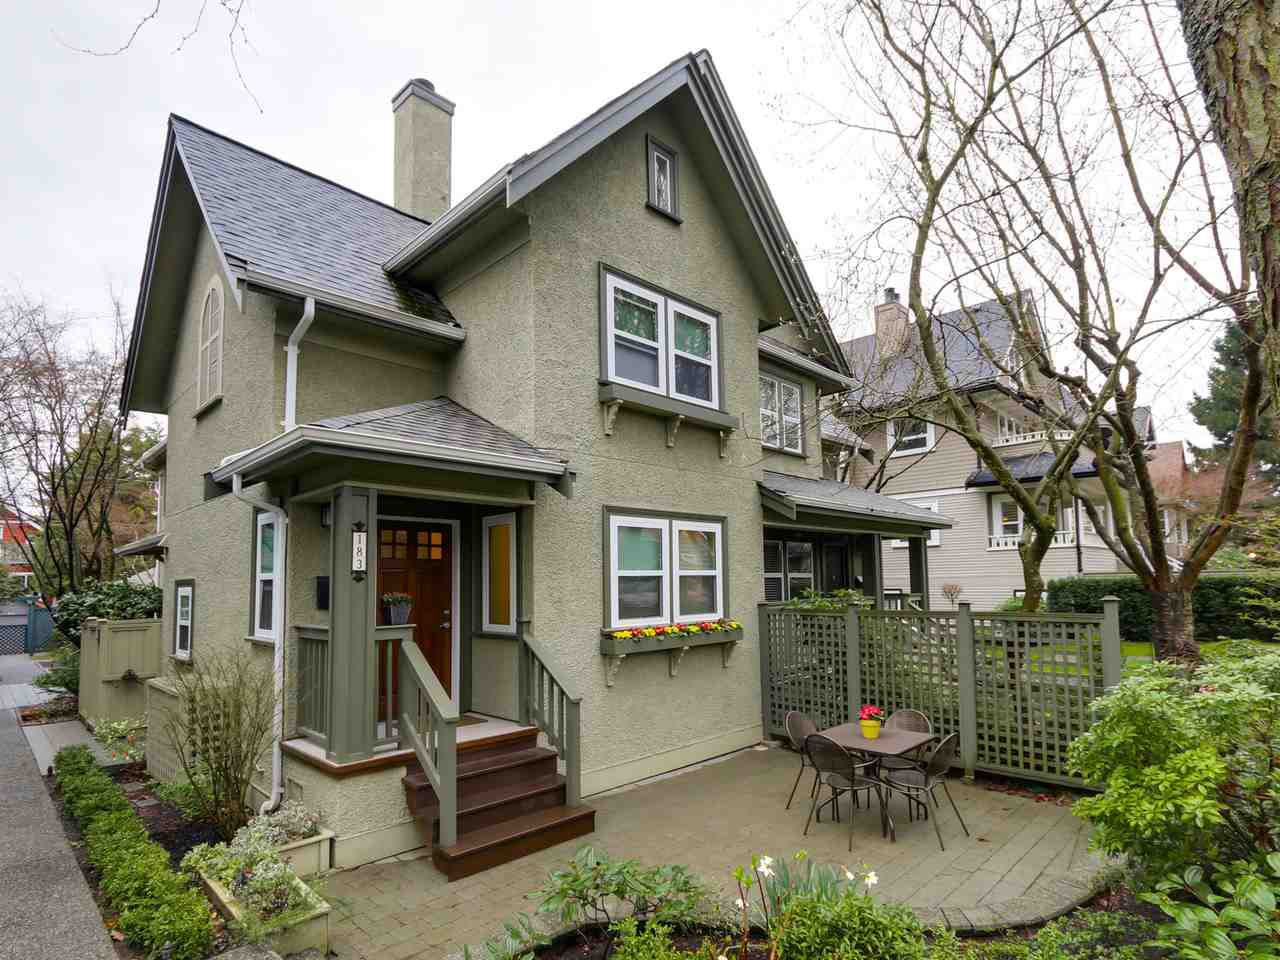 Main Photo: 183 W 13TH Avenue in Vancouver: Mount Pleasant VW Townhouse for sale (Vancouver West)  : MLS®# R2041356